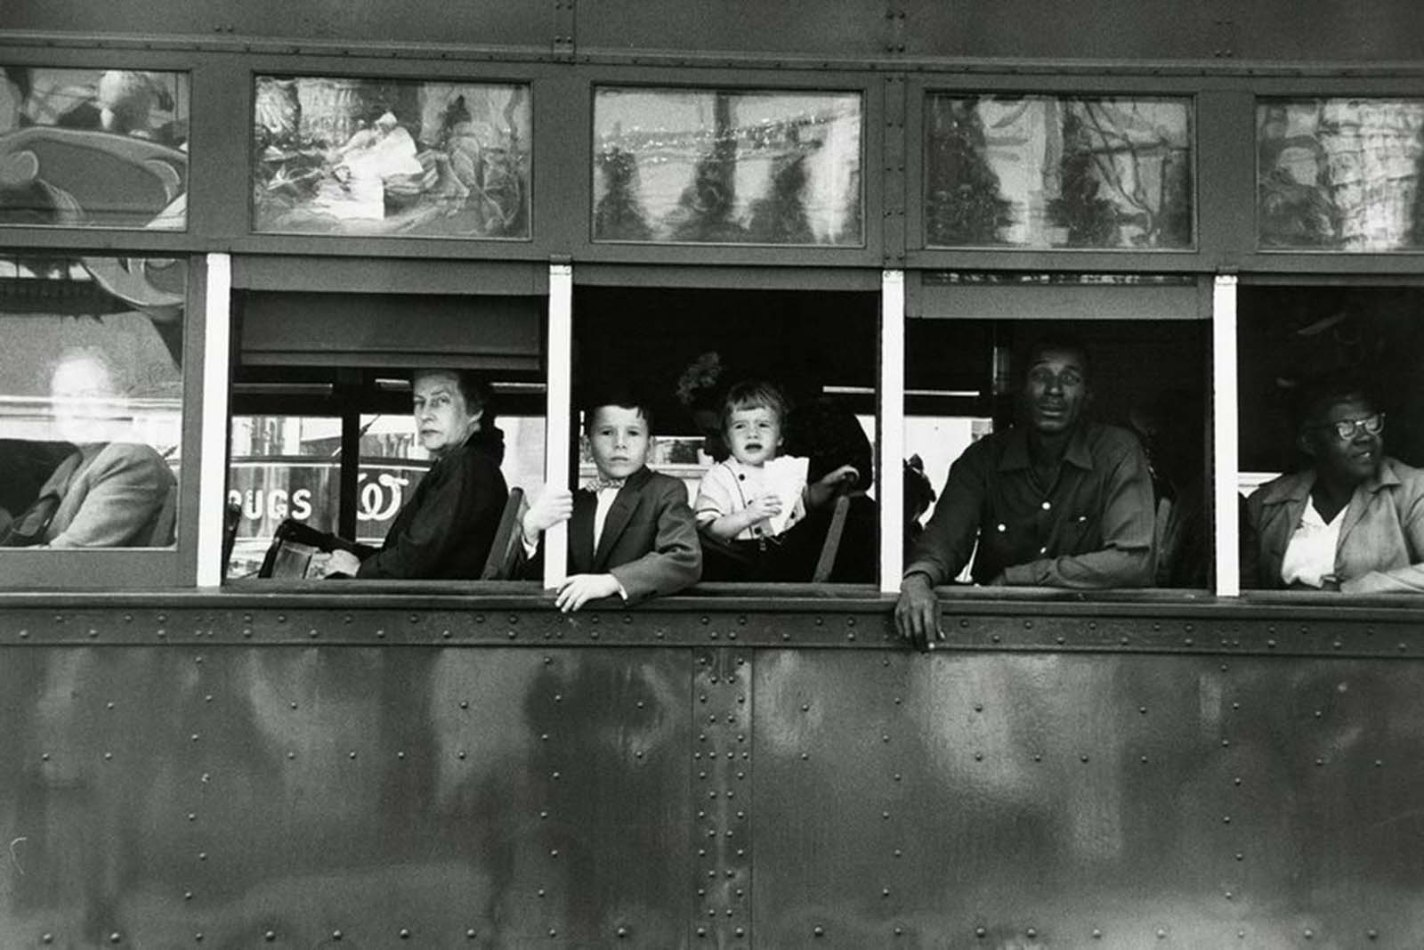 Trolley—New Orleans, Robert Frank